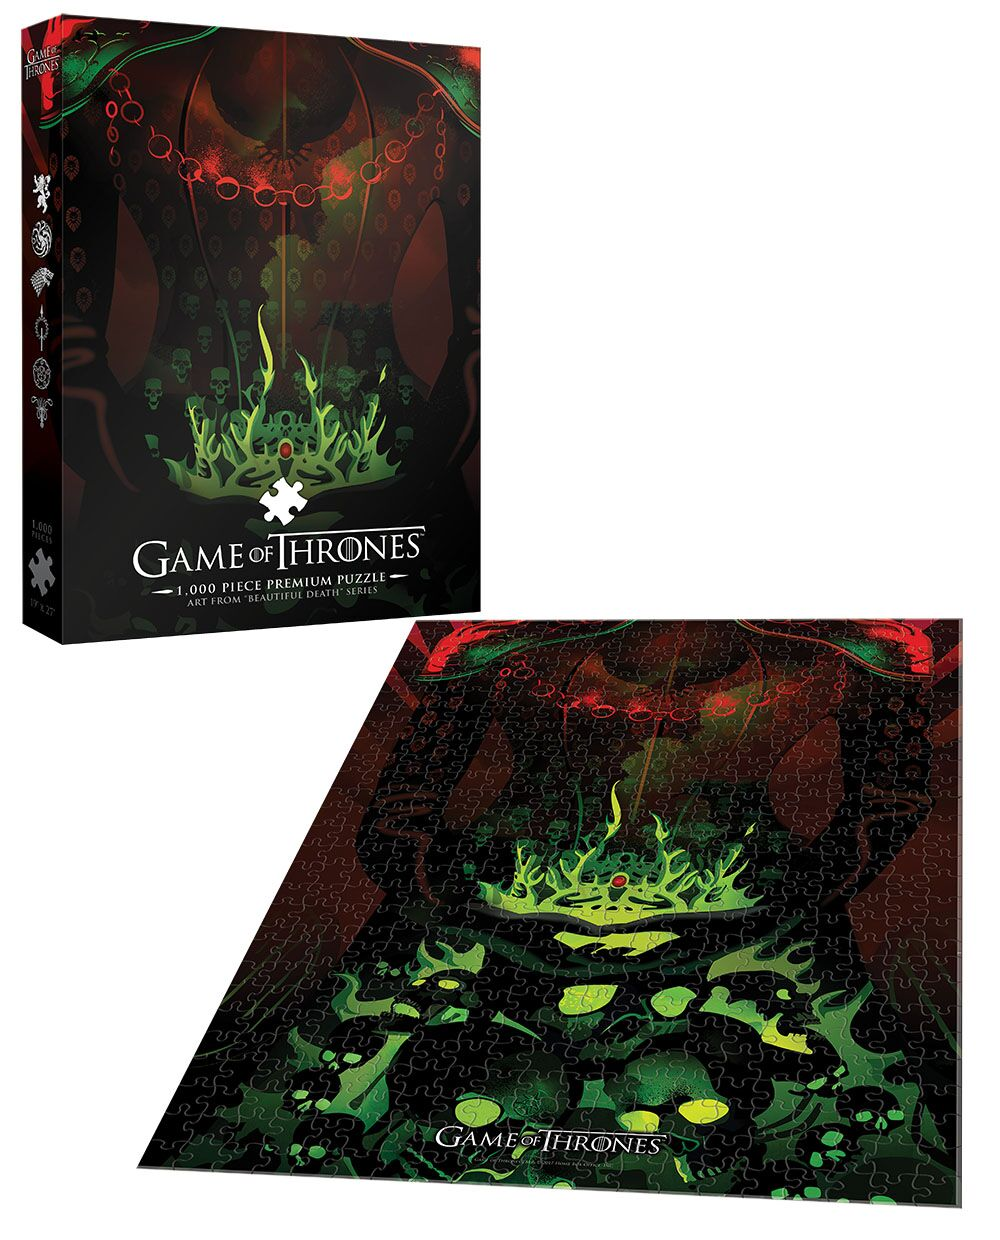 Game of Thrones™ Long May She Reign Movies / Books / TV Jigsaw Puzzle